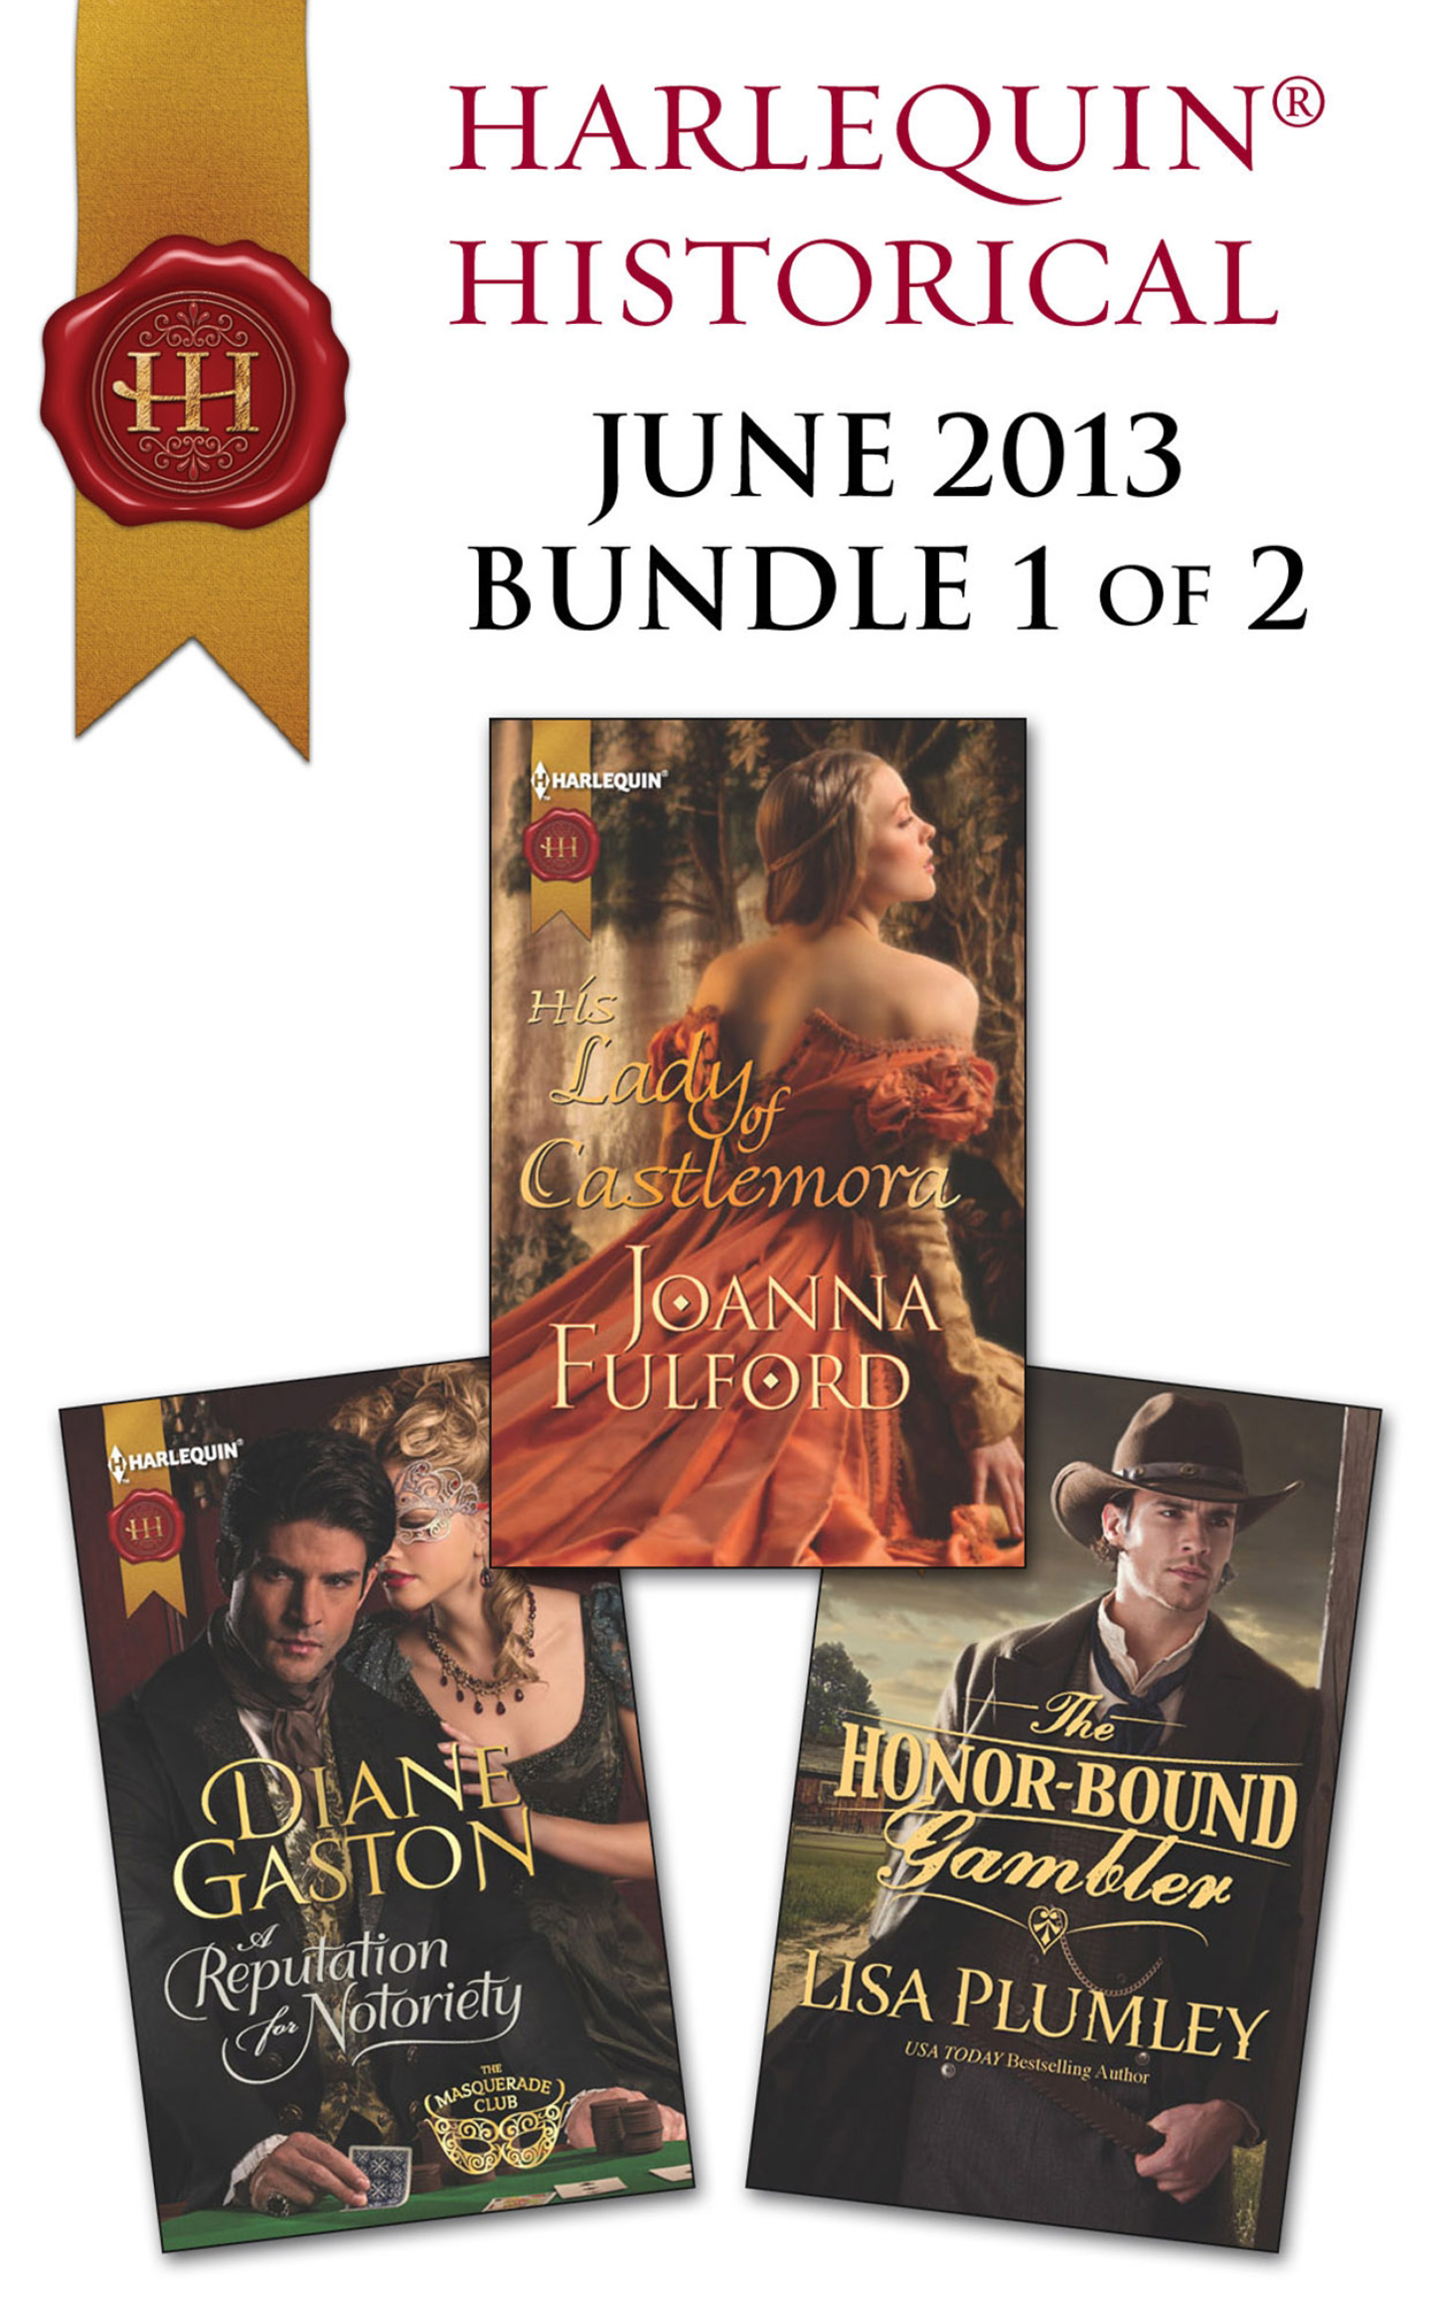 Harlequin Historical June 2013 - Bundle 1 of 2